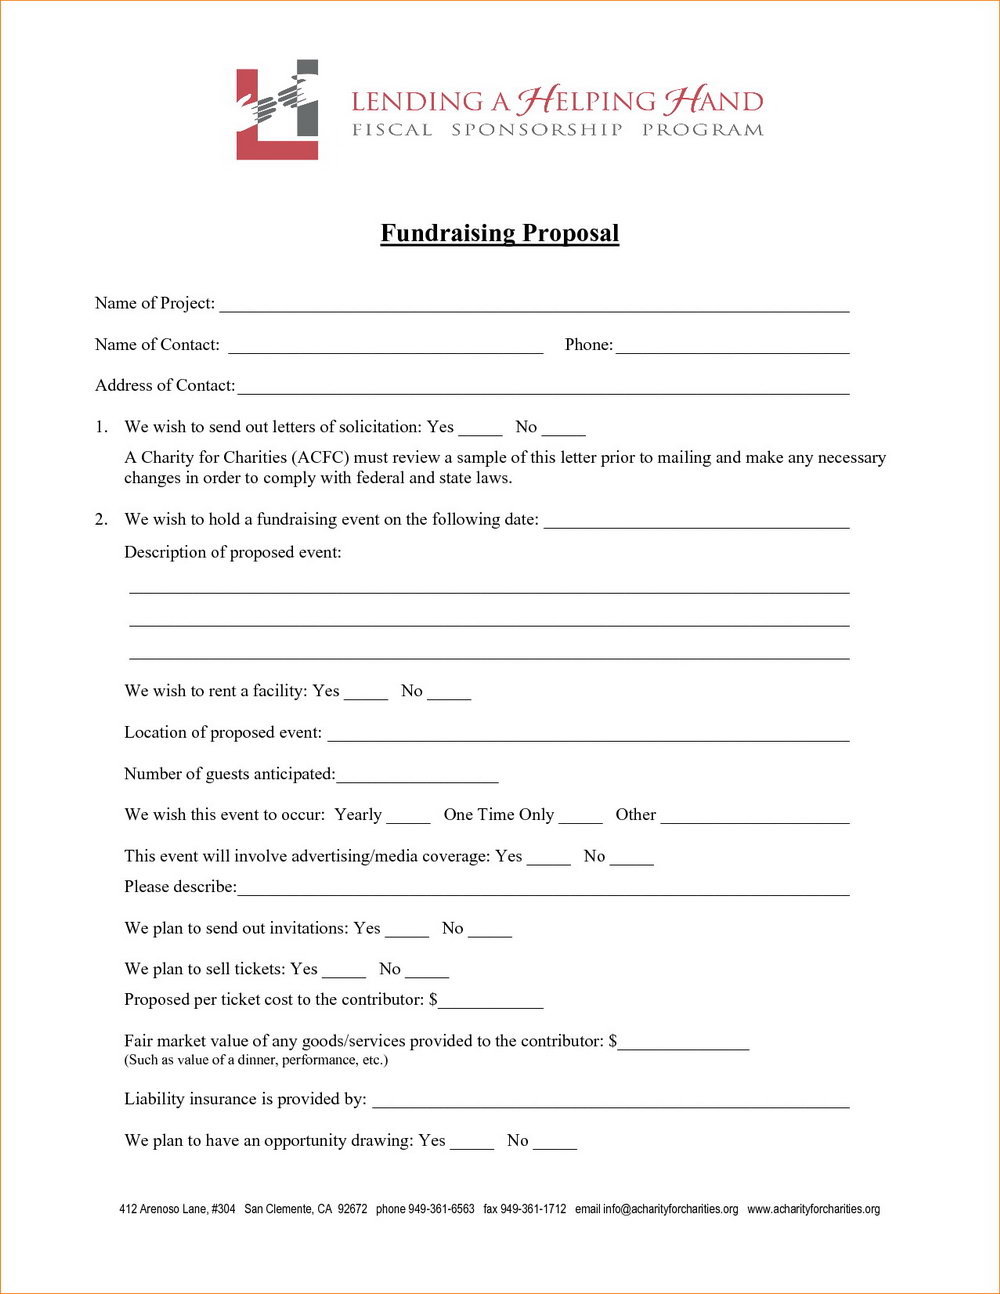 Sample Fundraising Proposal Template